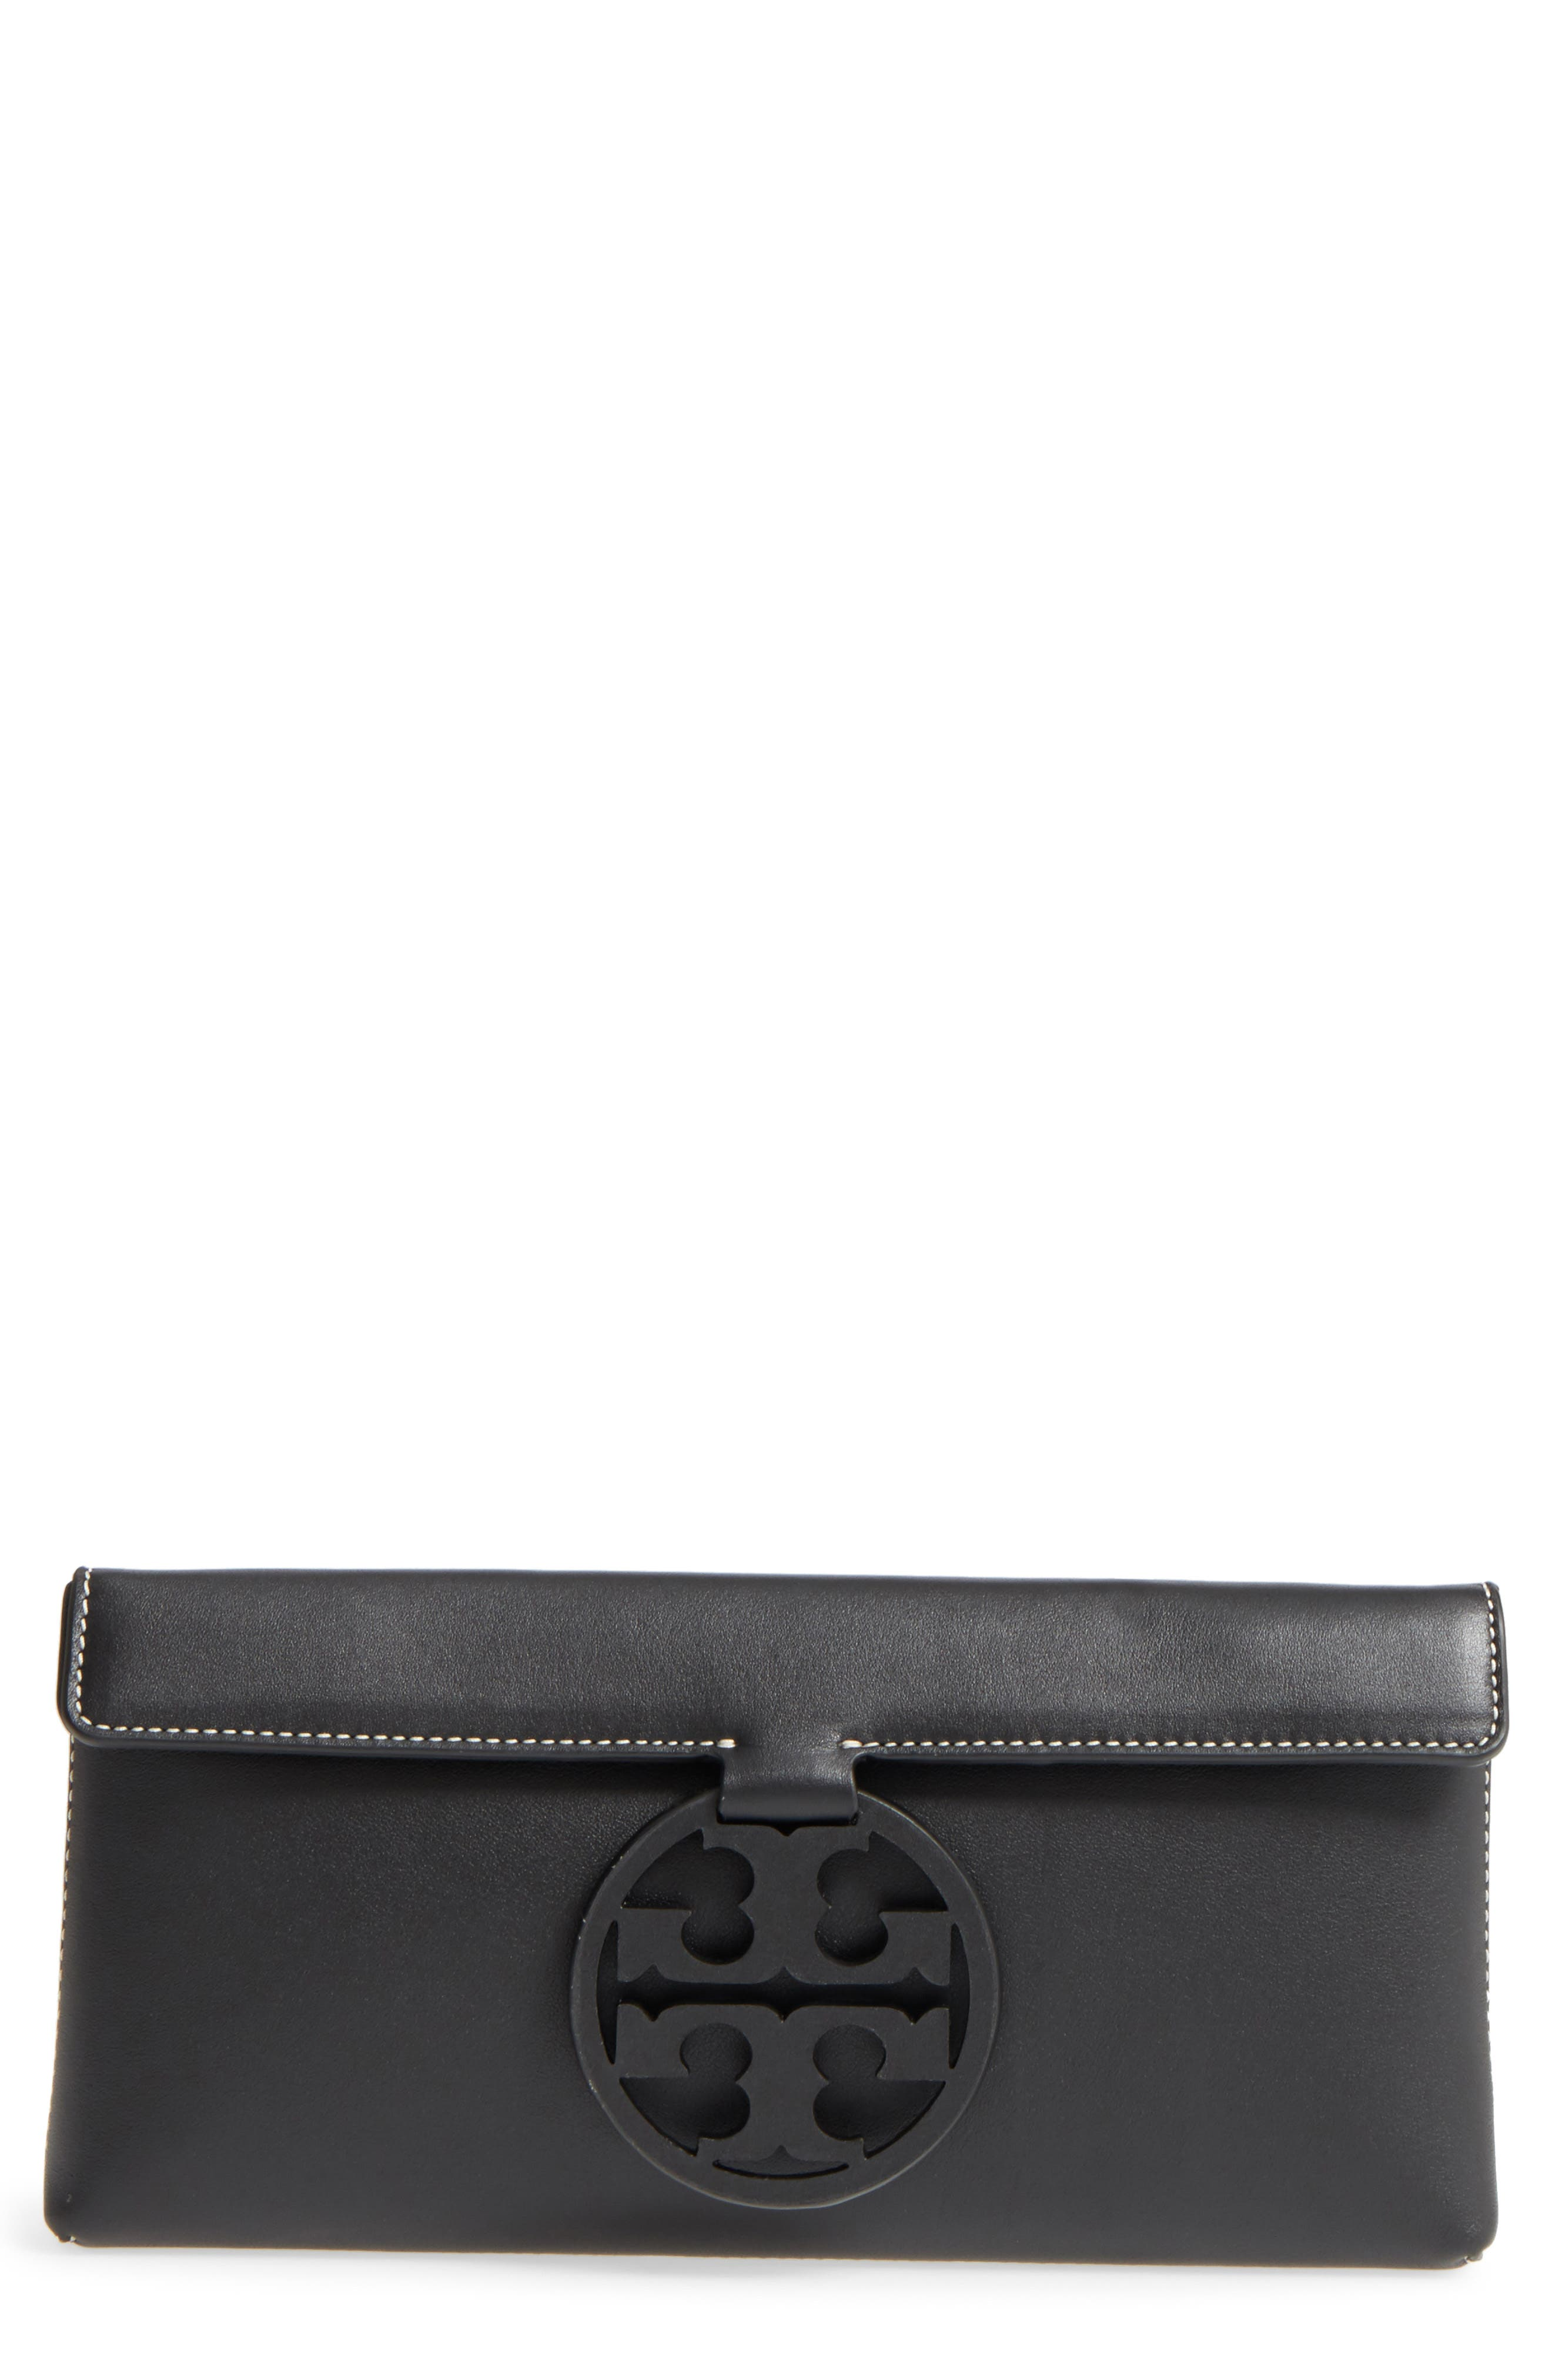 Alternate Image 1 Selected - Tory Burch Miller Leather Clutch